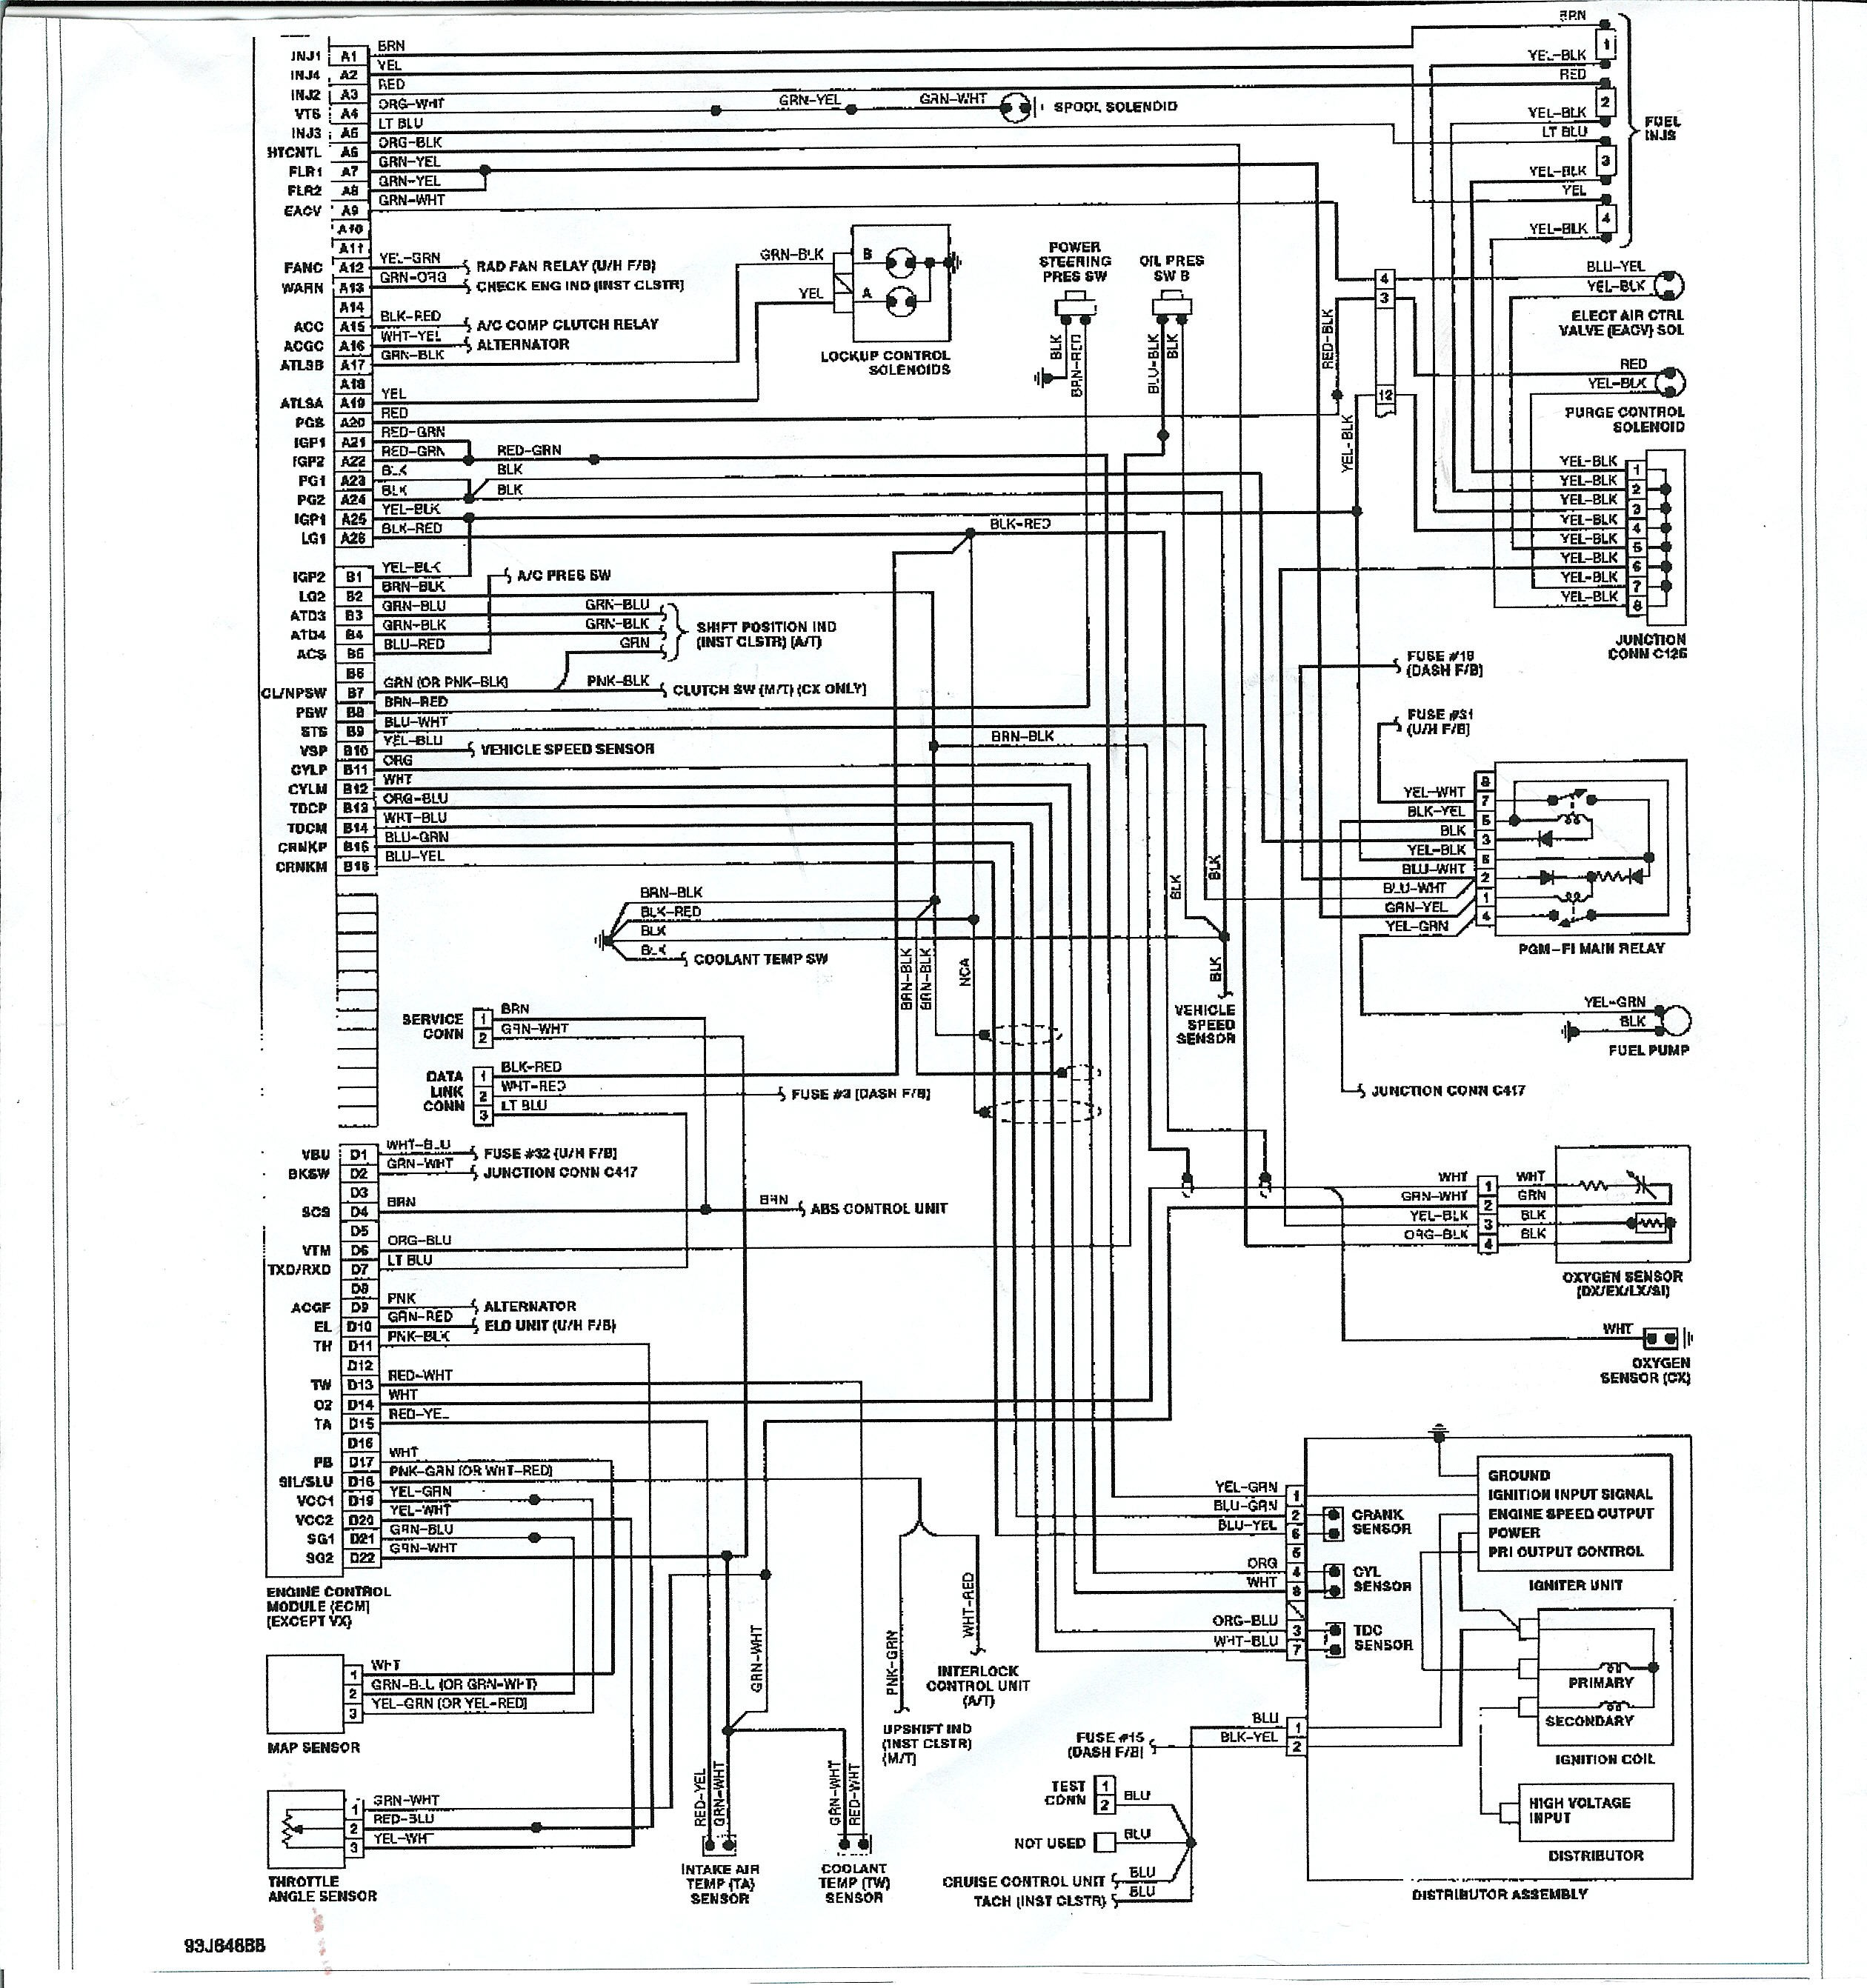 2000 Toyota 4runner Engine Diagram Awesome Radio Wiring Vw Transporter 95 Honda Civic Transmission Of